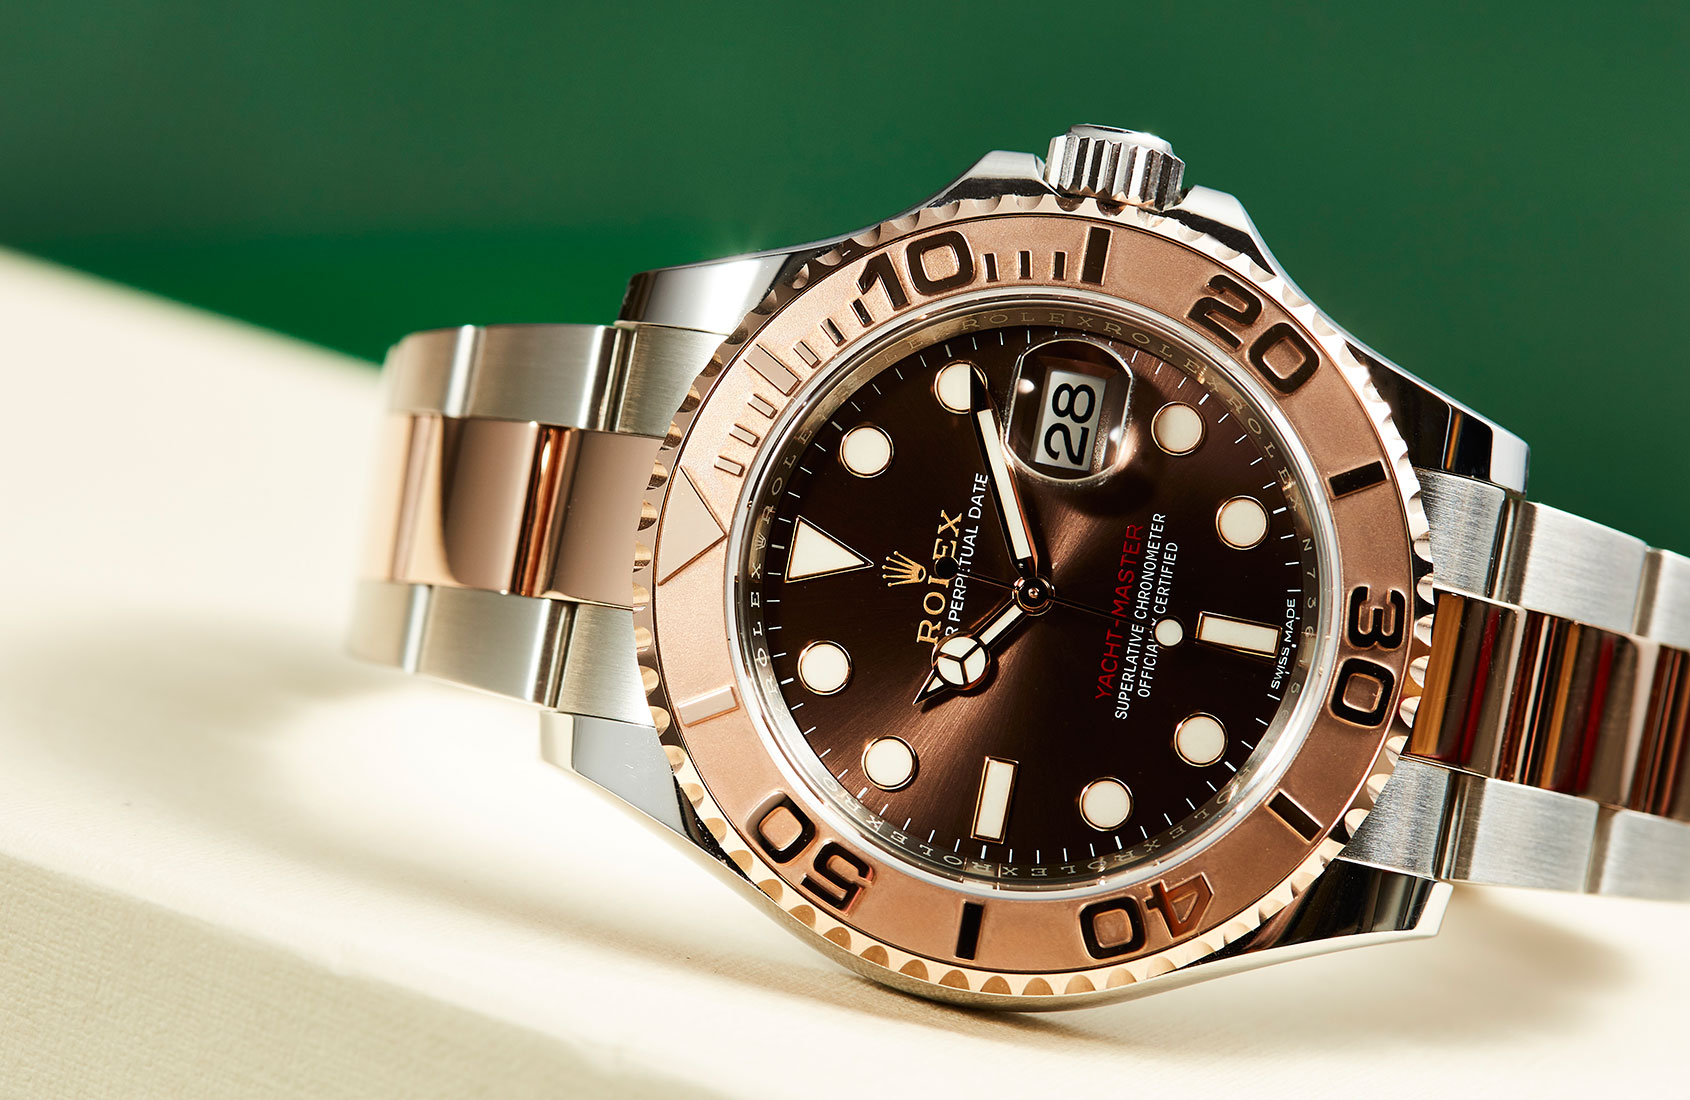 d60f56d001c7 Rolex Yacht-Master 40 Everose Rolesor – Hands-on Review of the ...